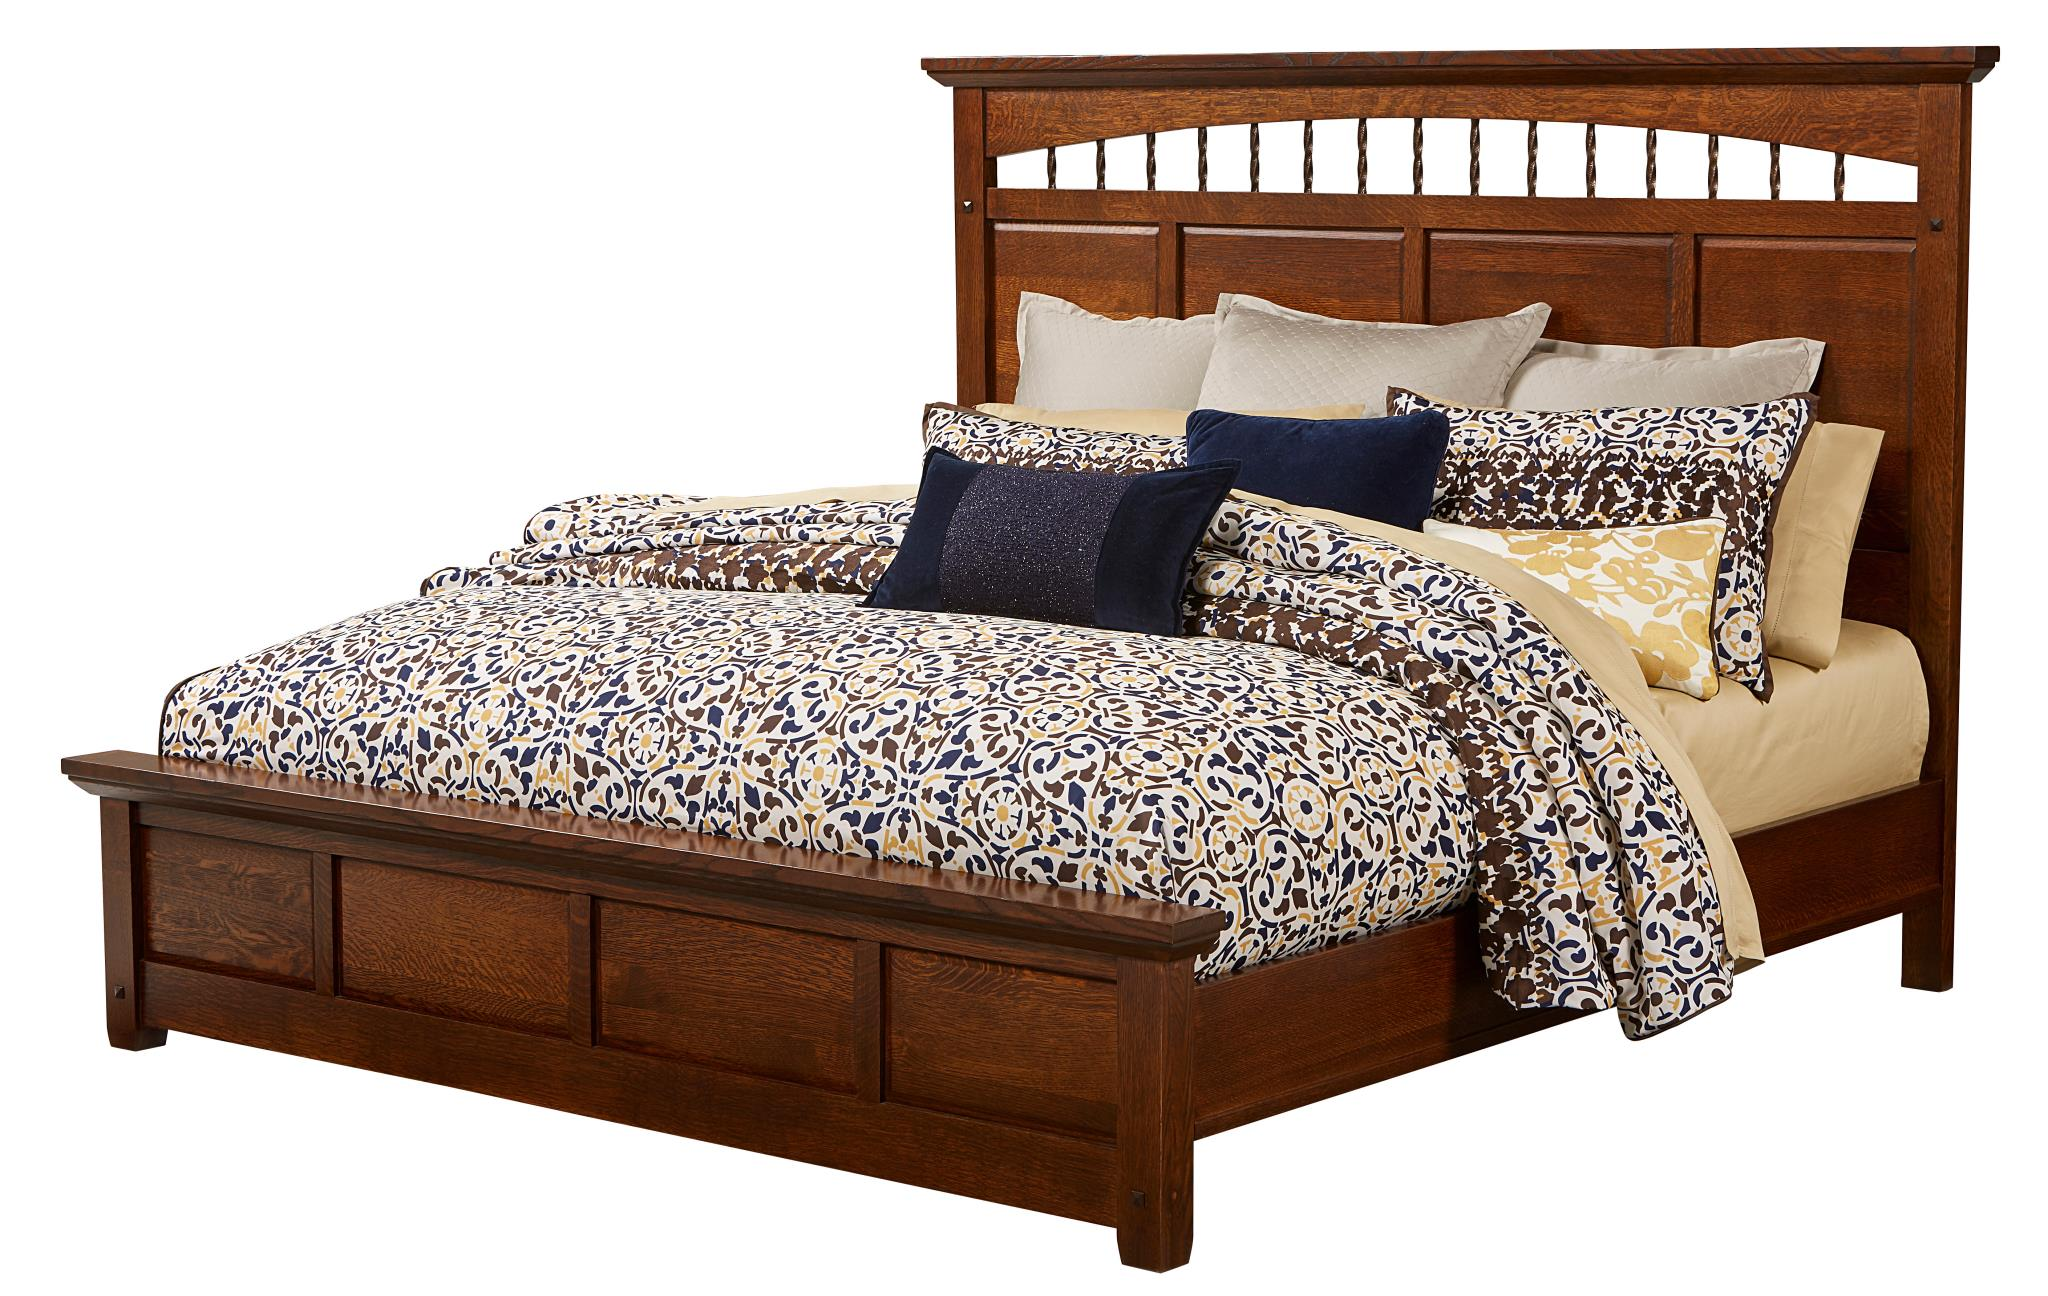 Amish Arroyo Seco Bed Image